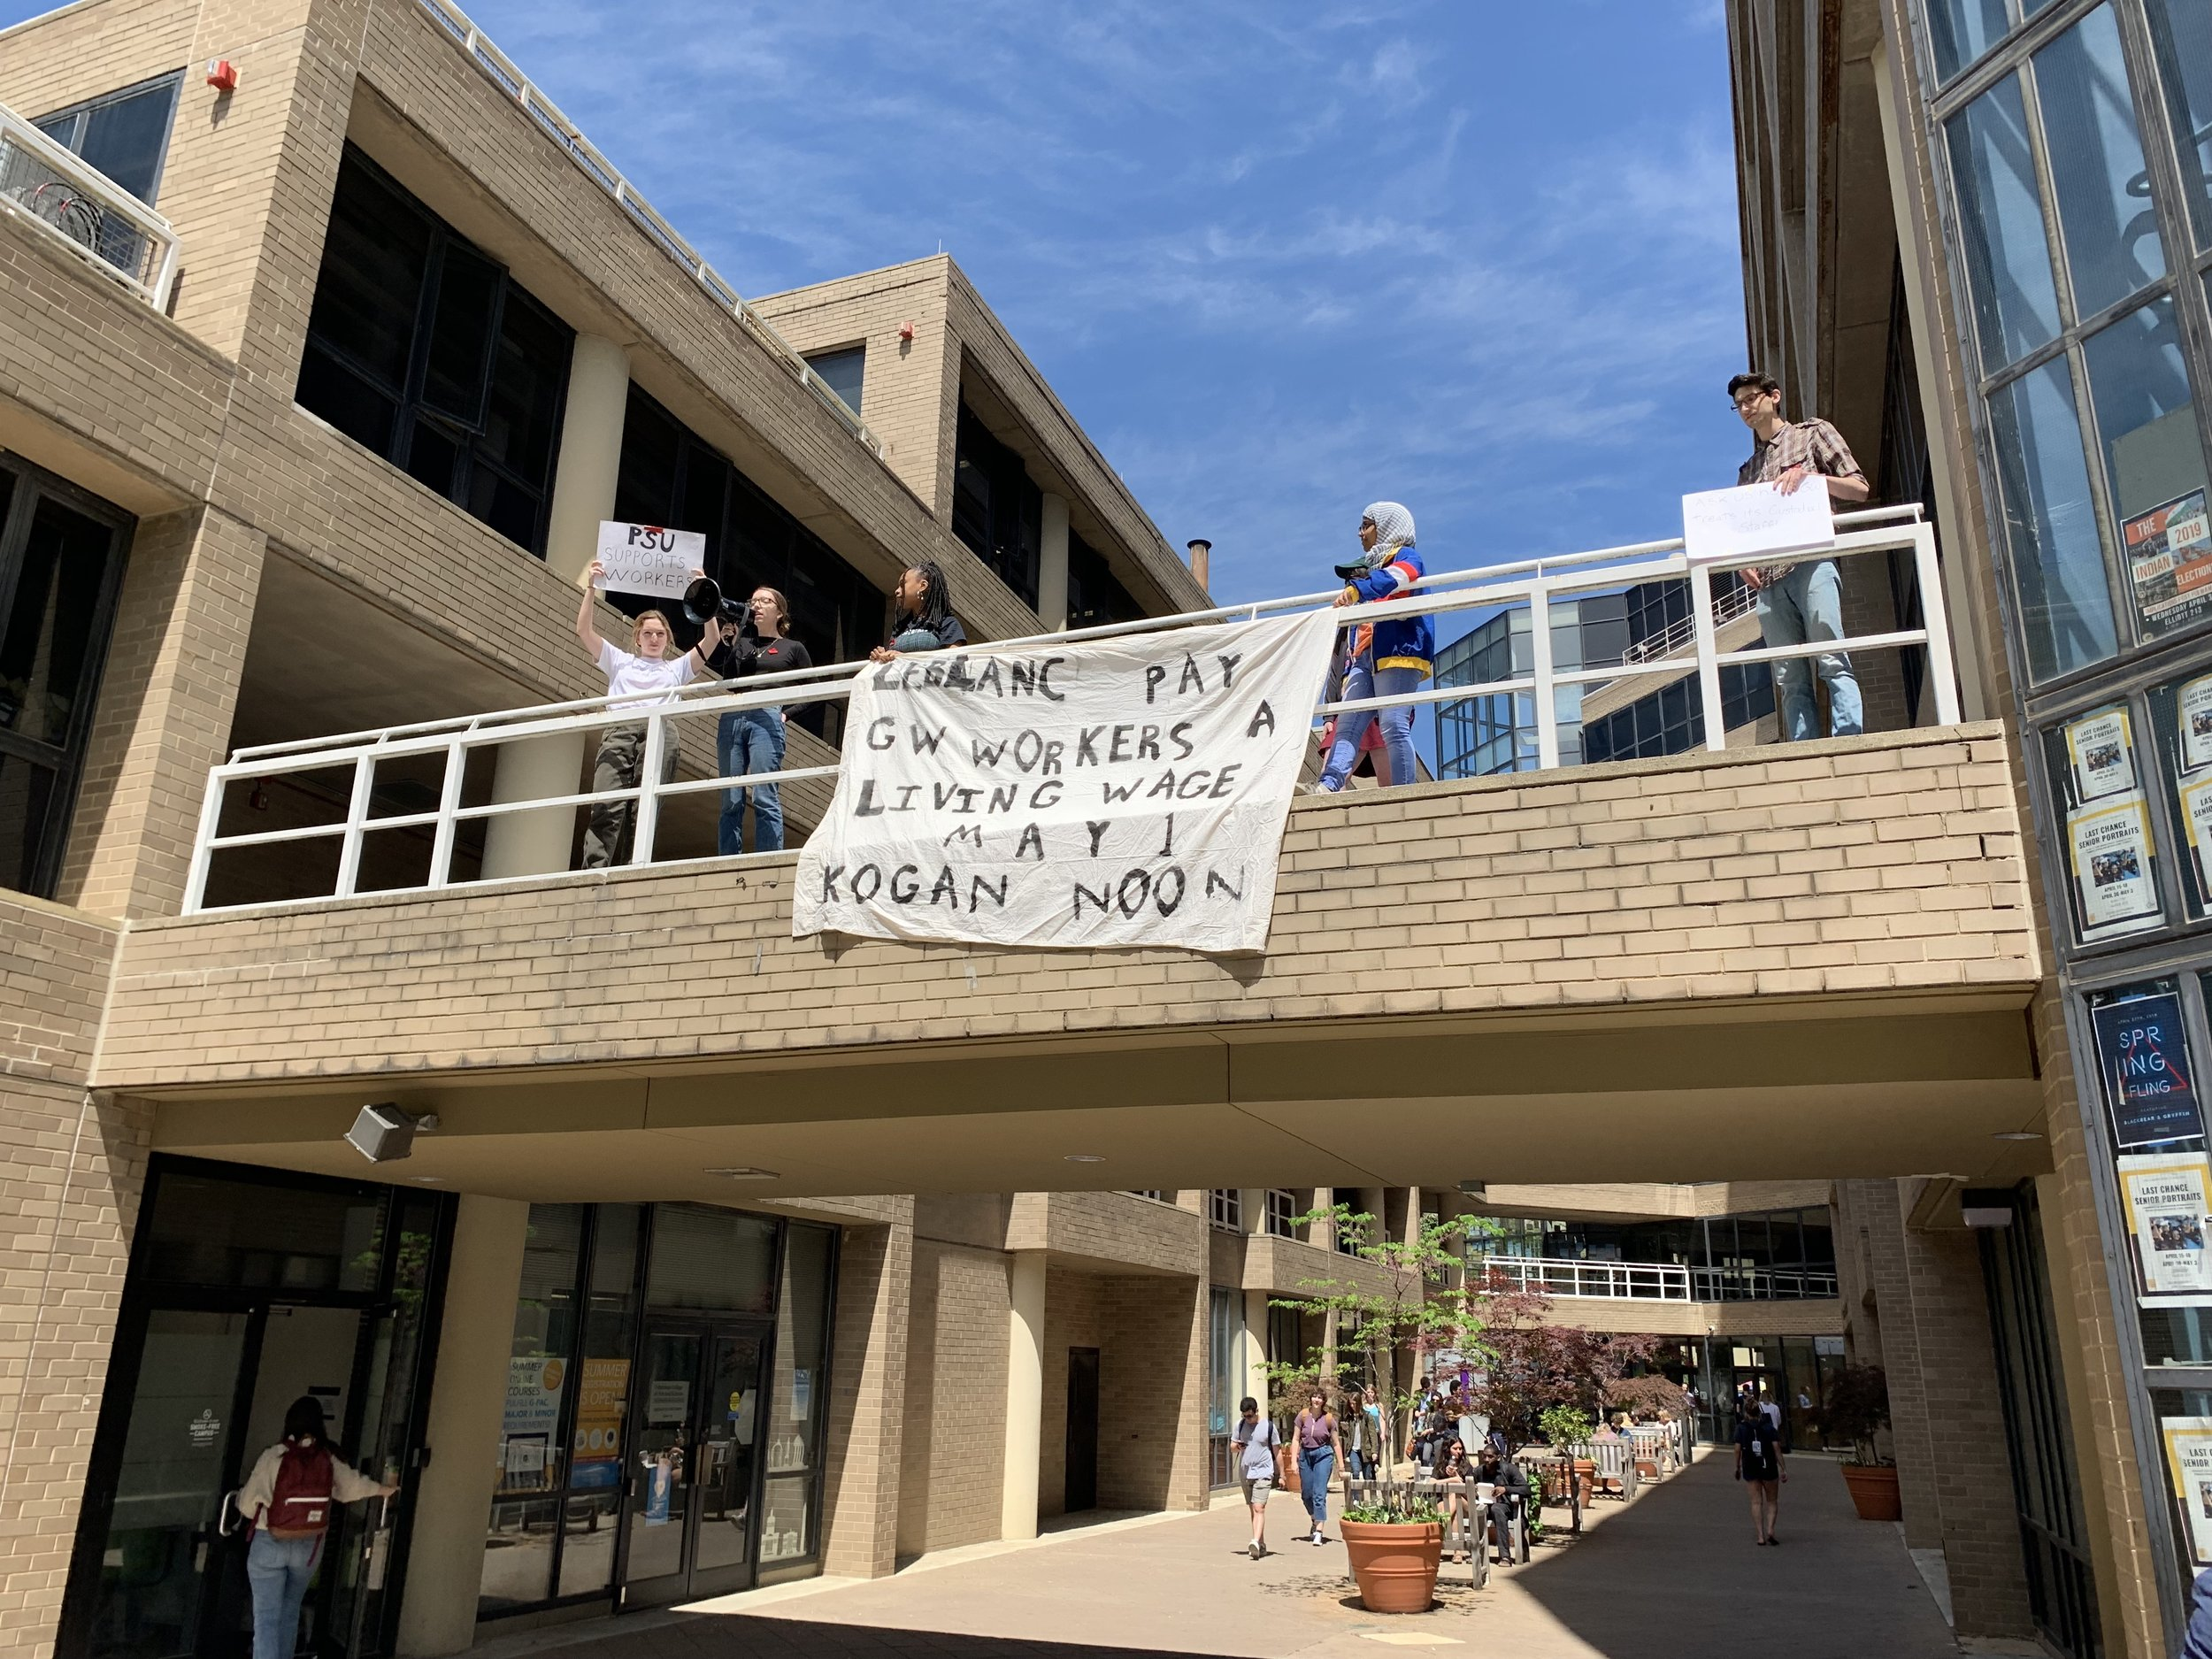 - On April 24, 2019, Fair Jobs organizers dropped a banner off the bridge of Phillips Hall to support our May Day rally for fair jobs and a living wage.